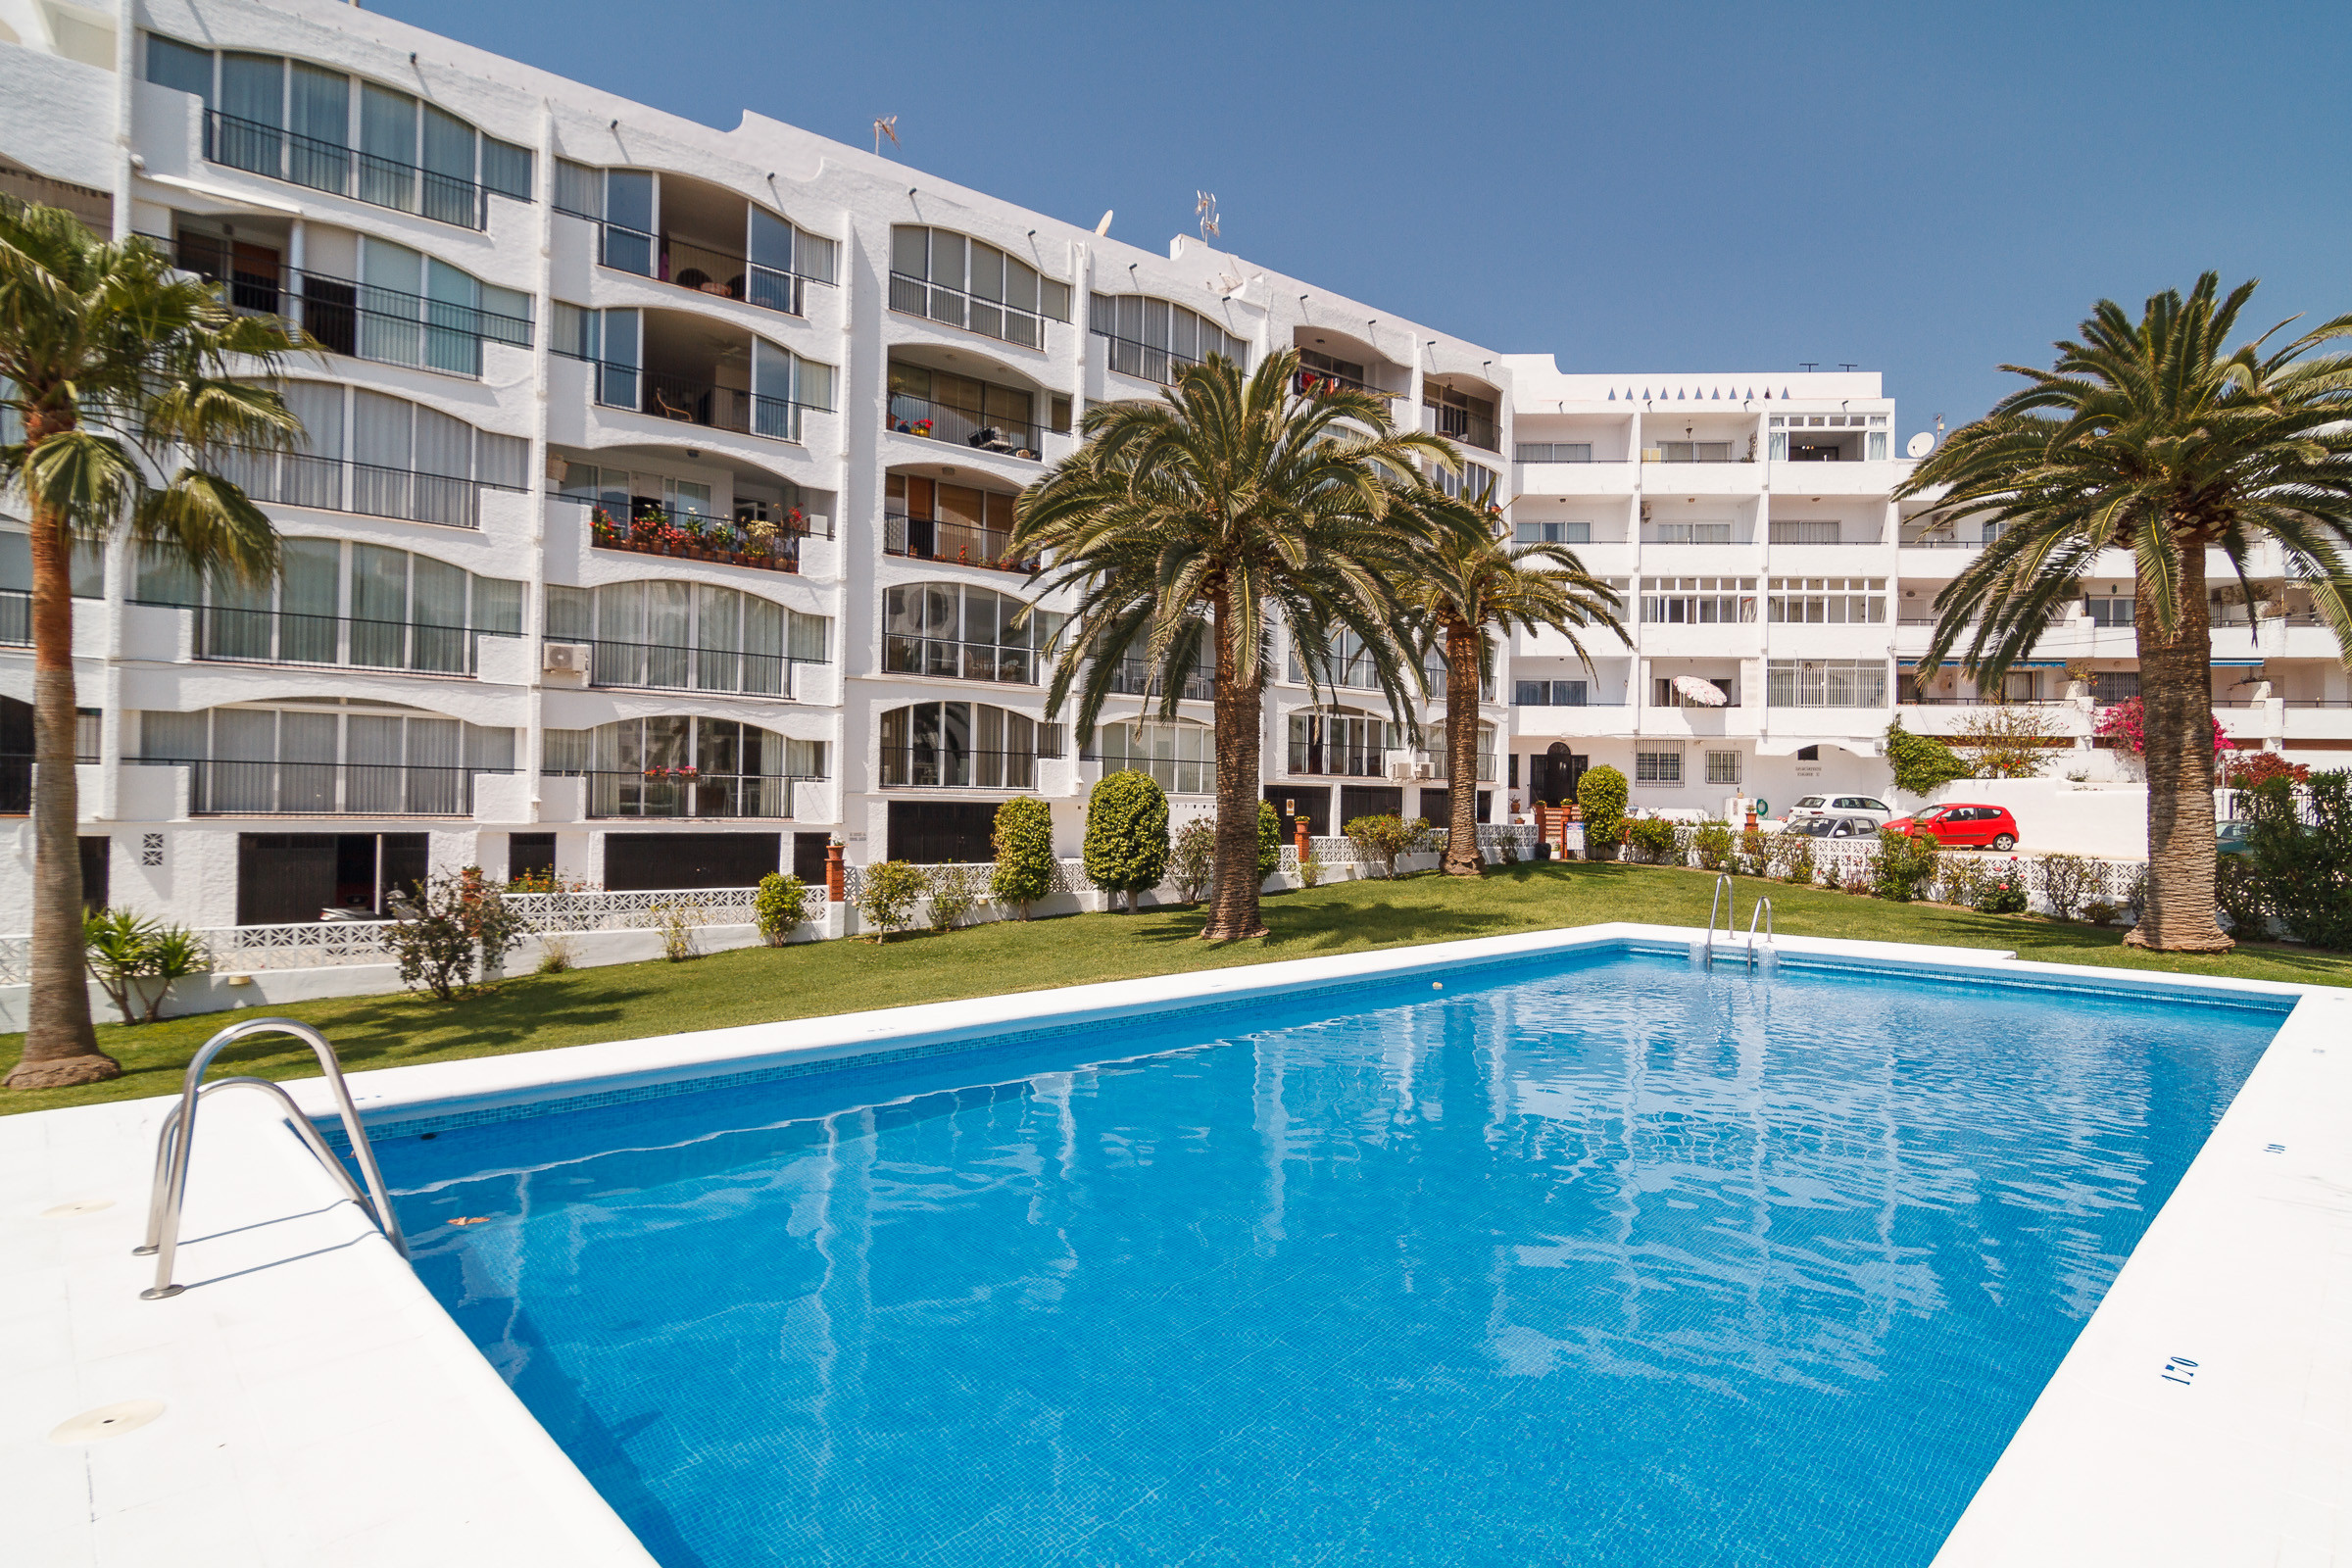 Edificio Carabeo Nerja - Apartments for rent (ES)